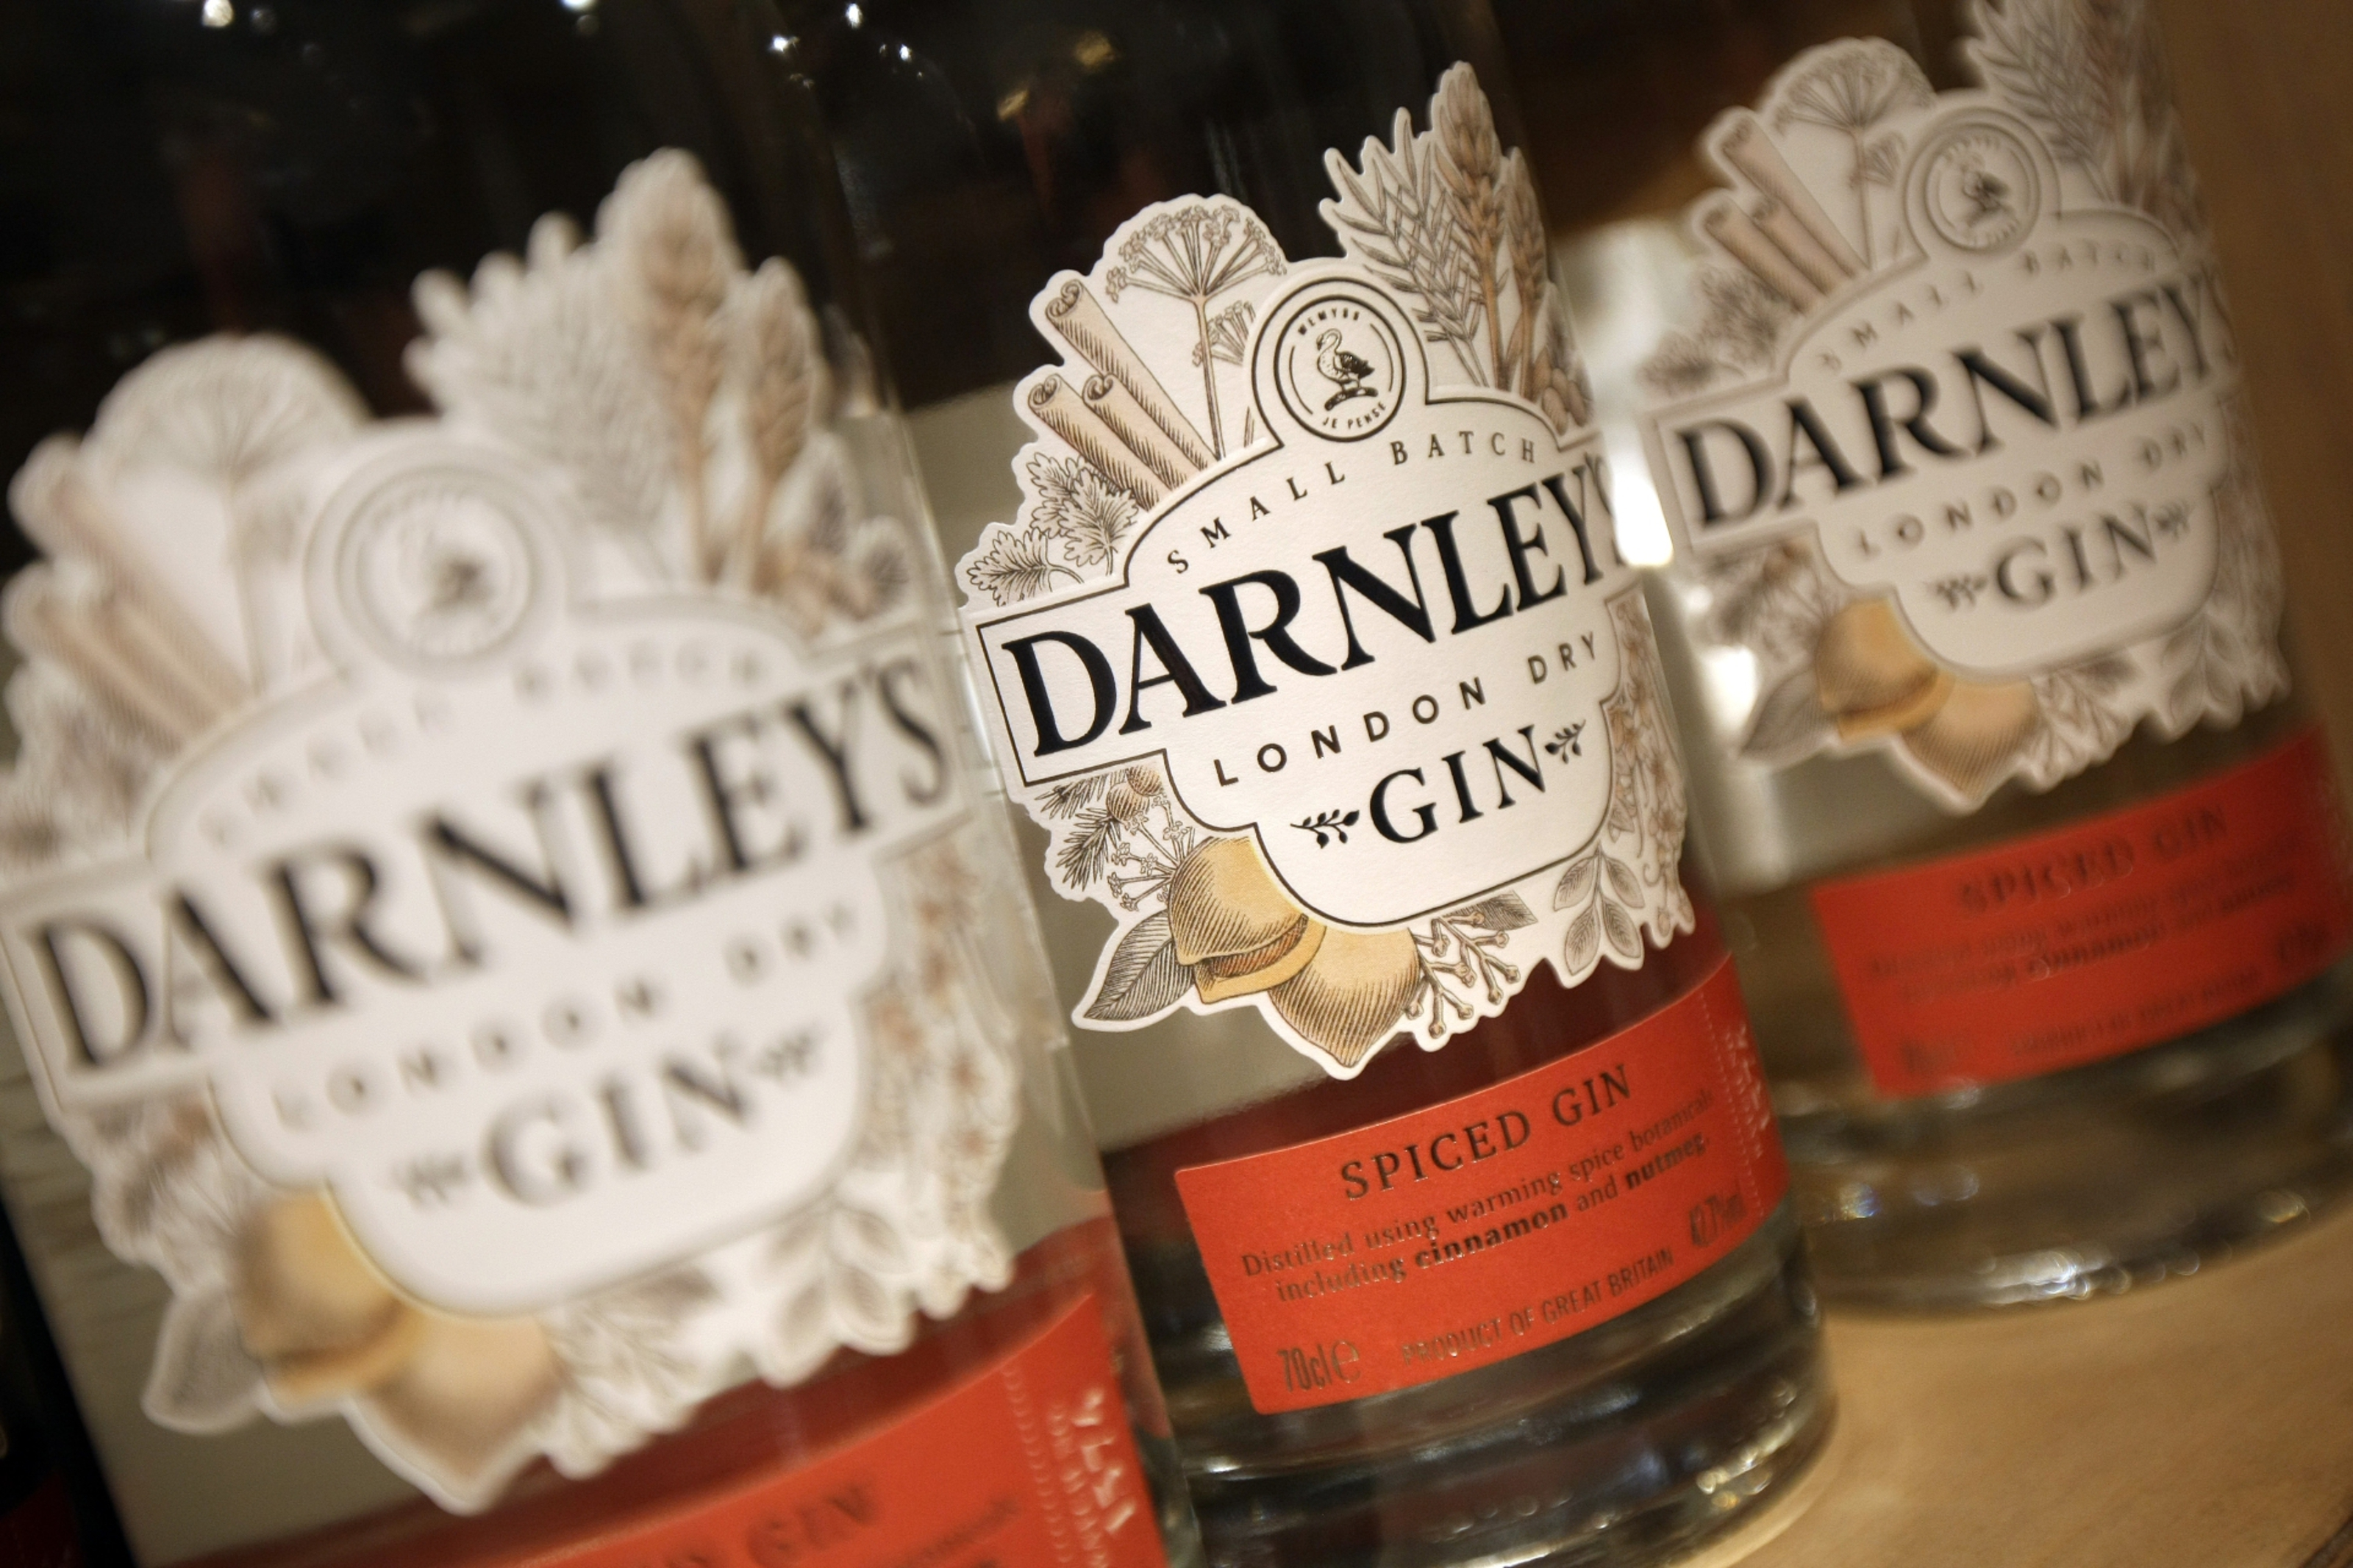 Darnley's Gin has just opened a new distillery in Kingsbarns.